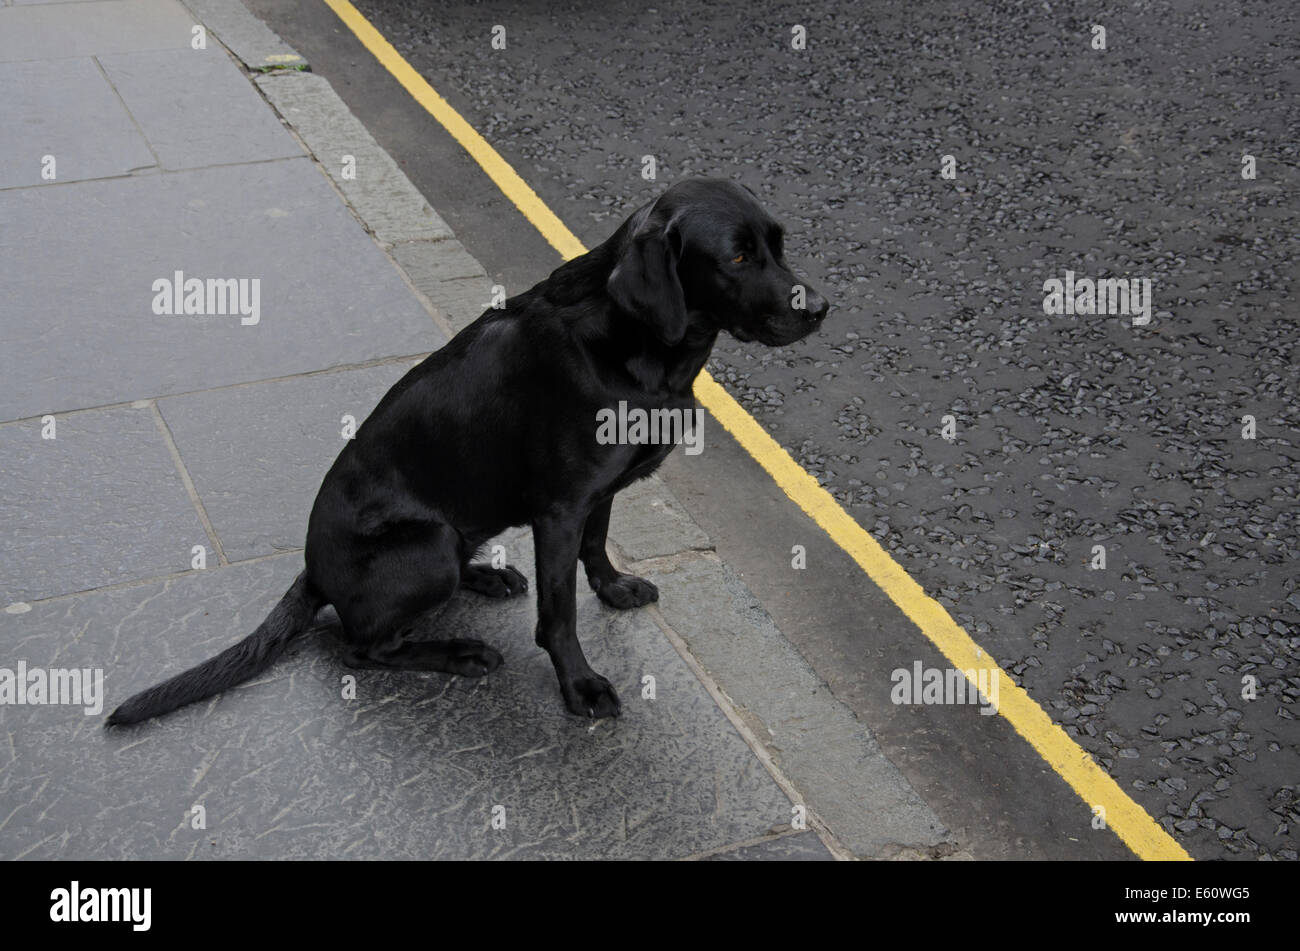 A black Labrador dog sitting on the pavement next to a yellow line on the road. - Stock Image